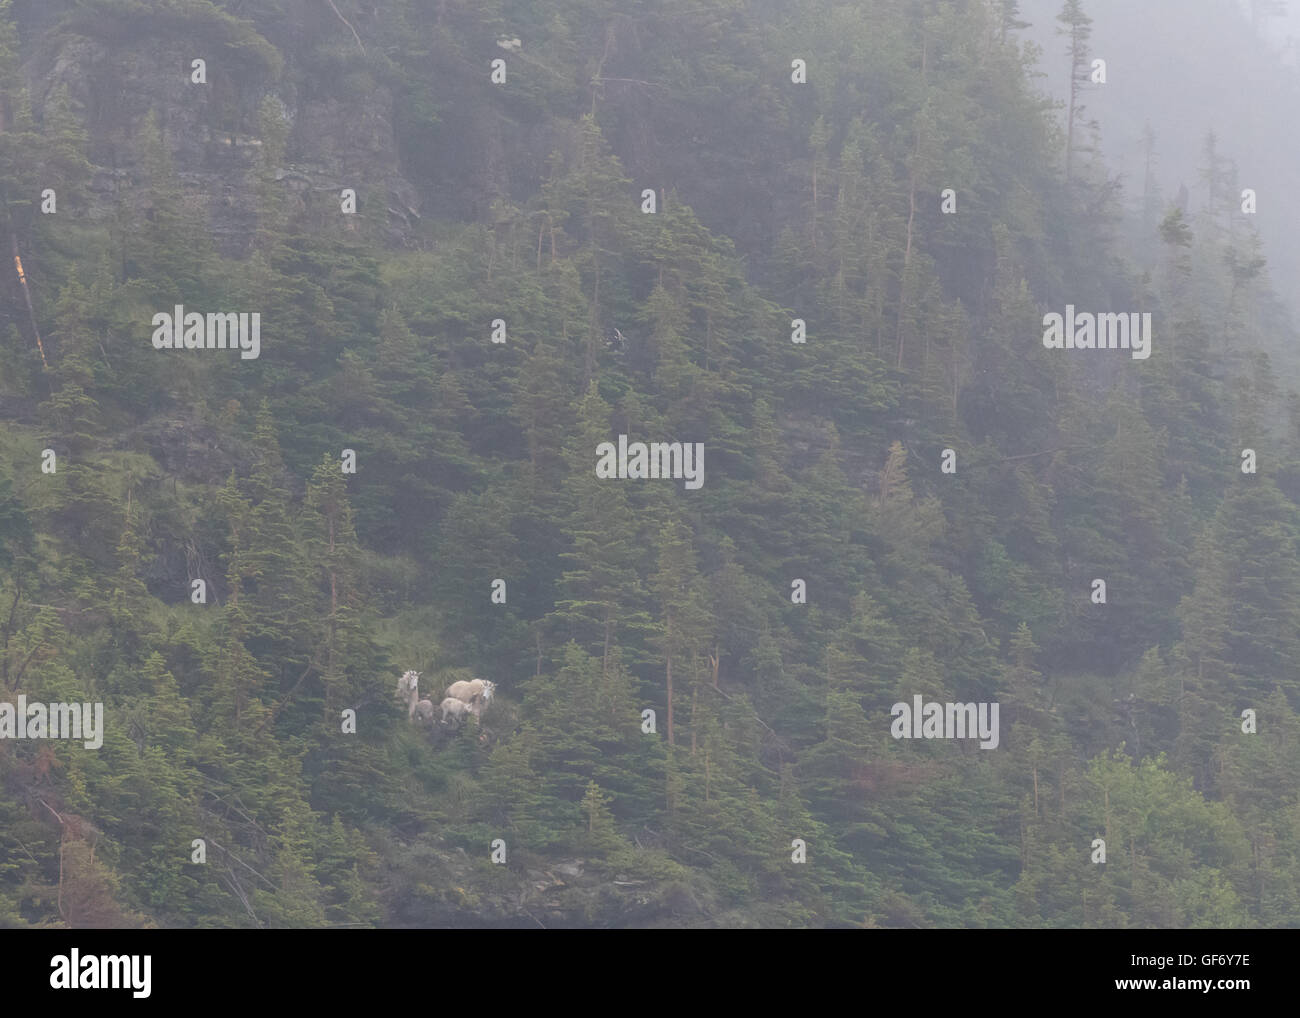 Family of Mountain Goats Look Toward Camera from Foggy Cliff Above - Stock Image